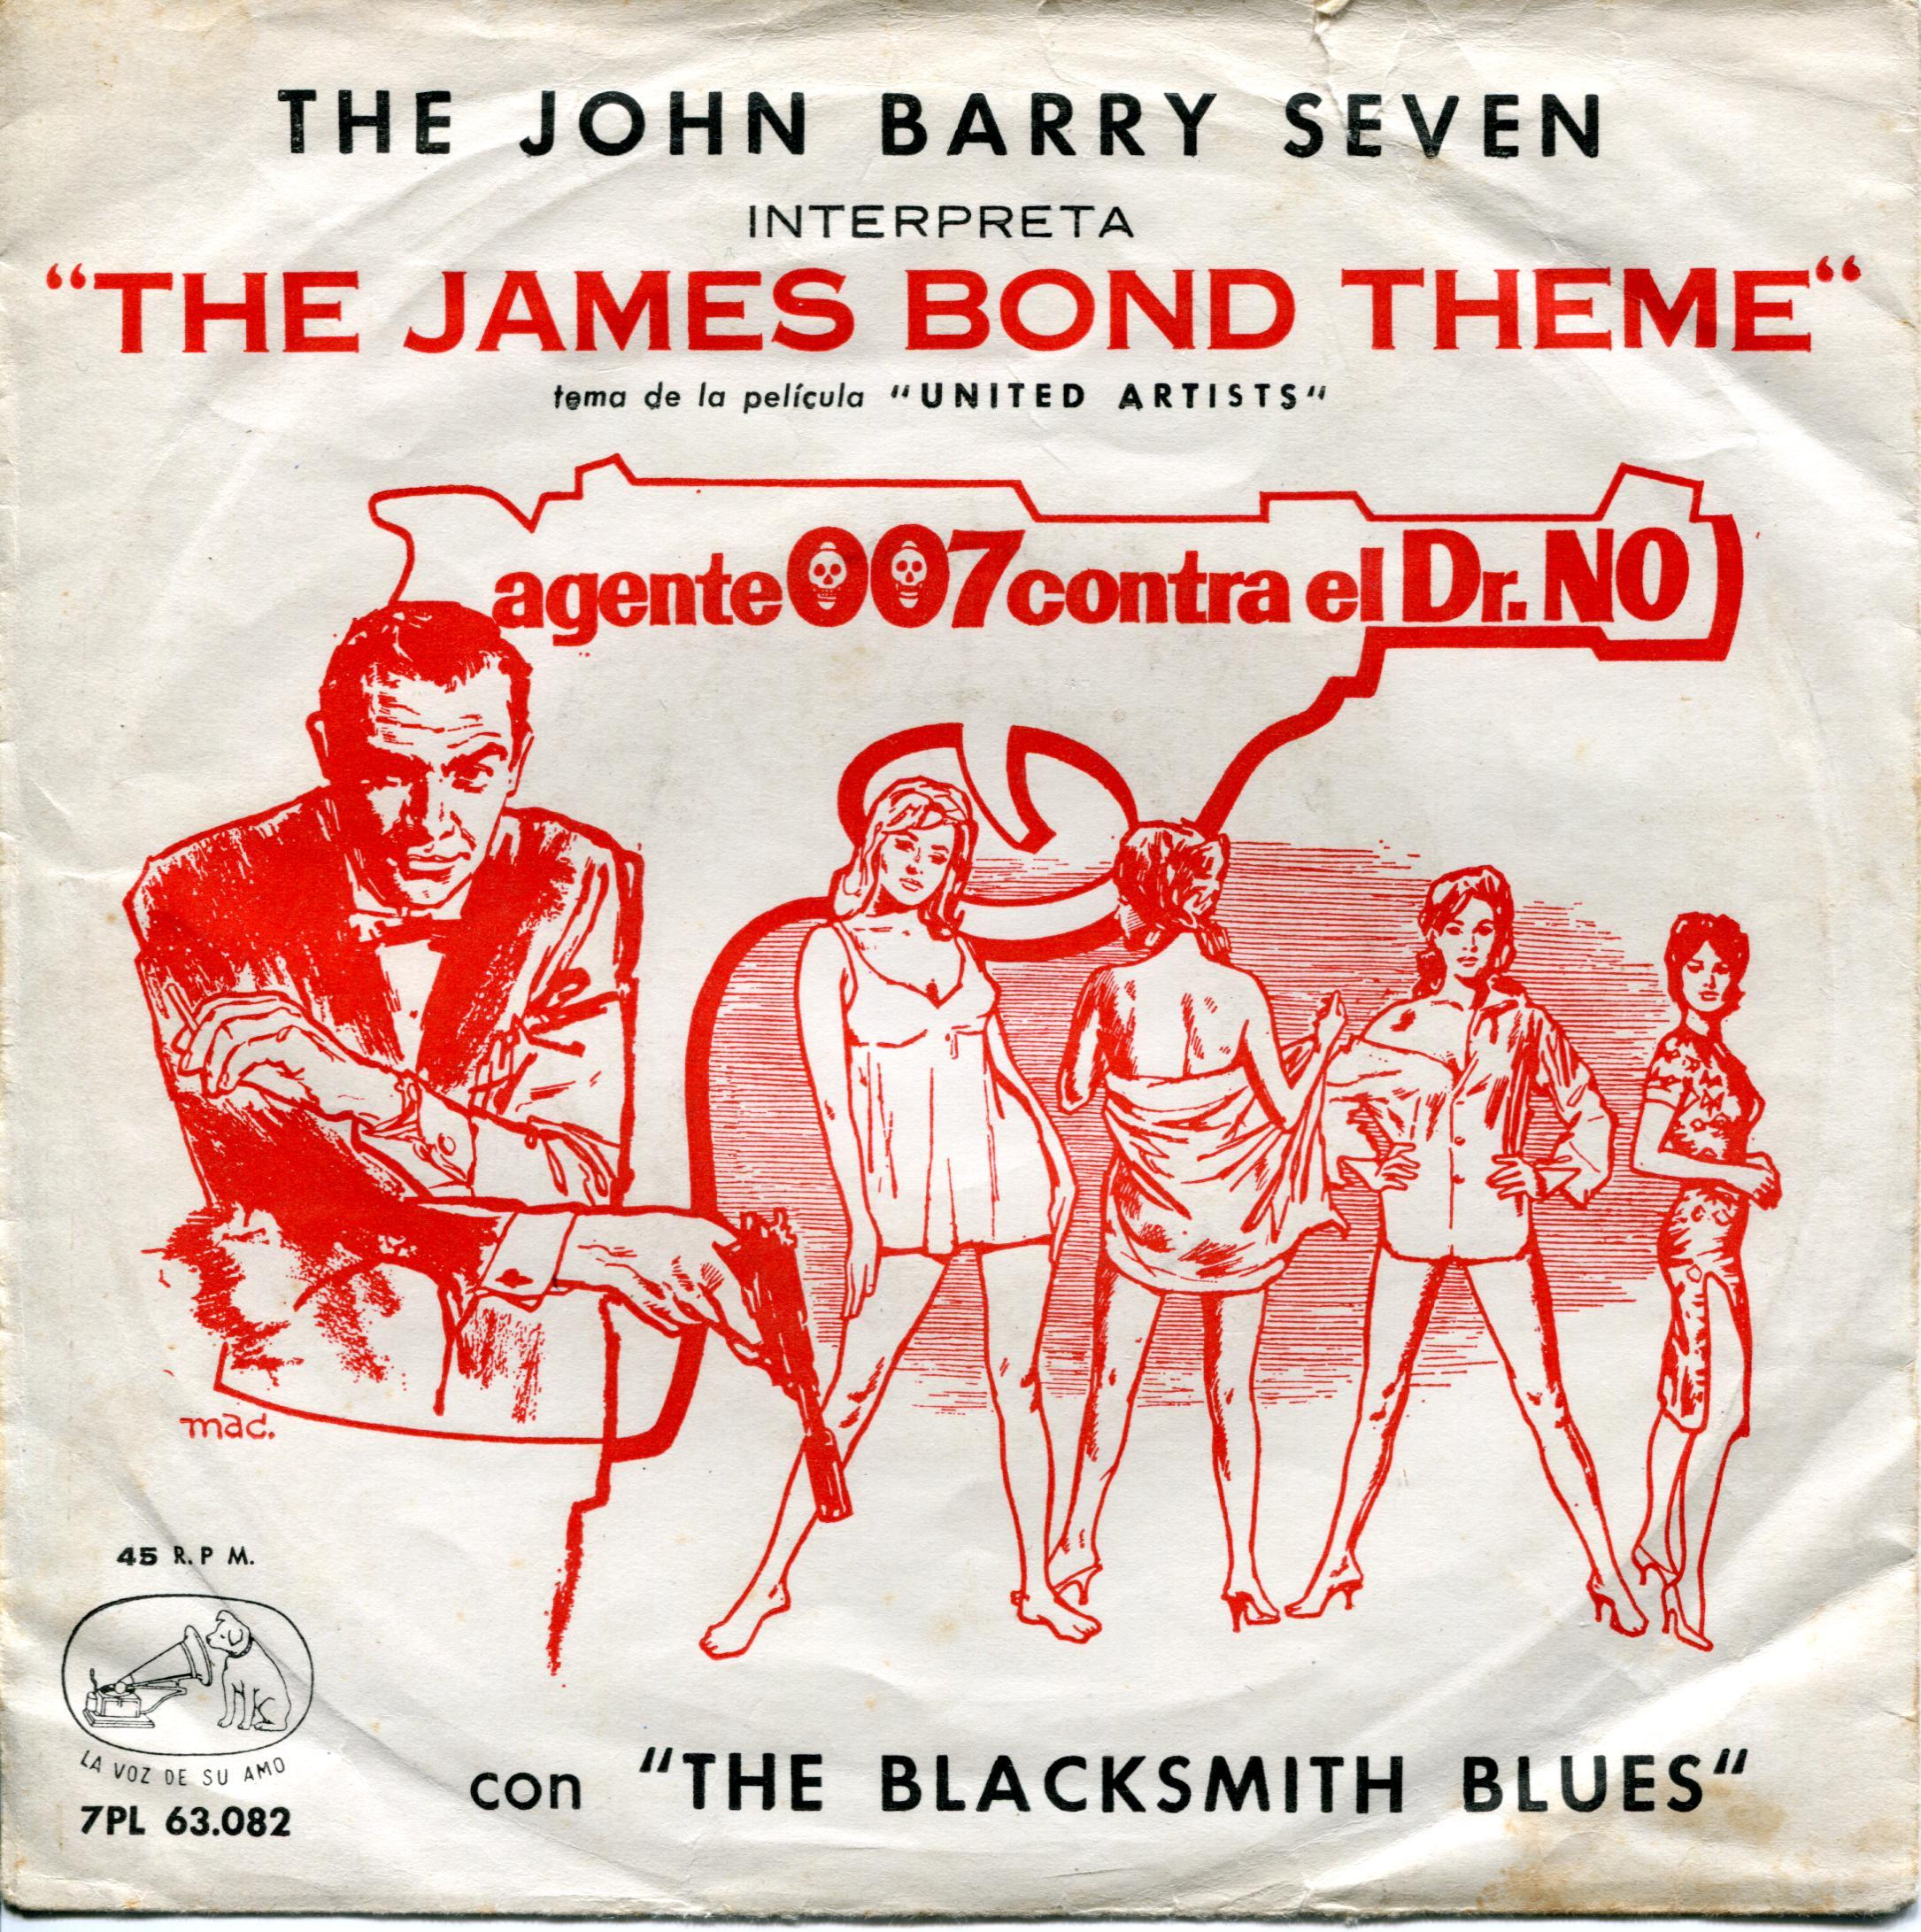 The John Barry Seven interpreta James Bond Theme Dr No.